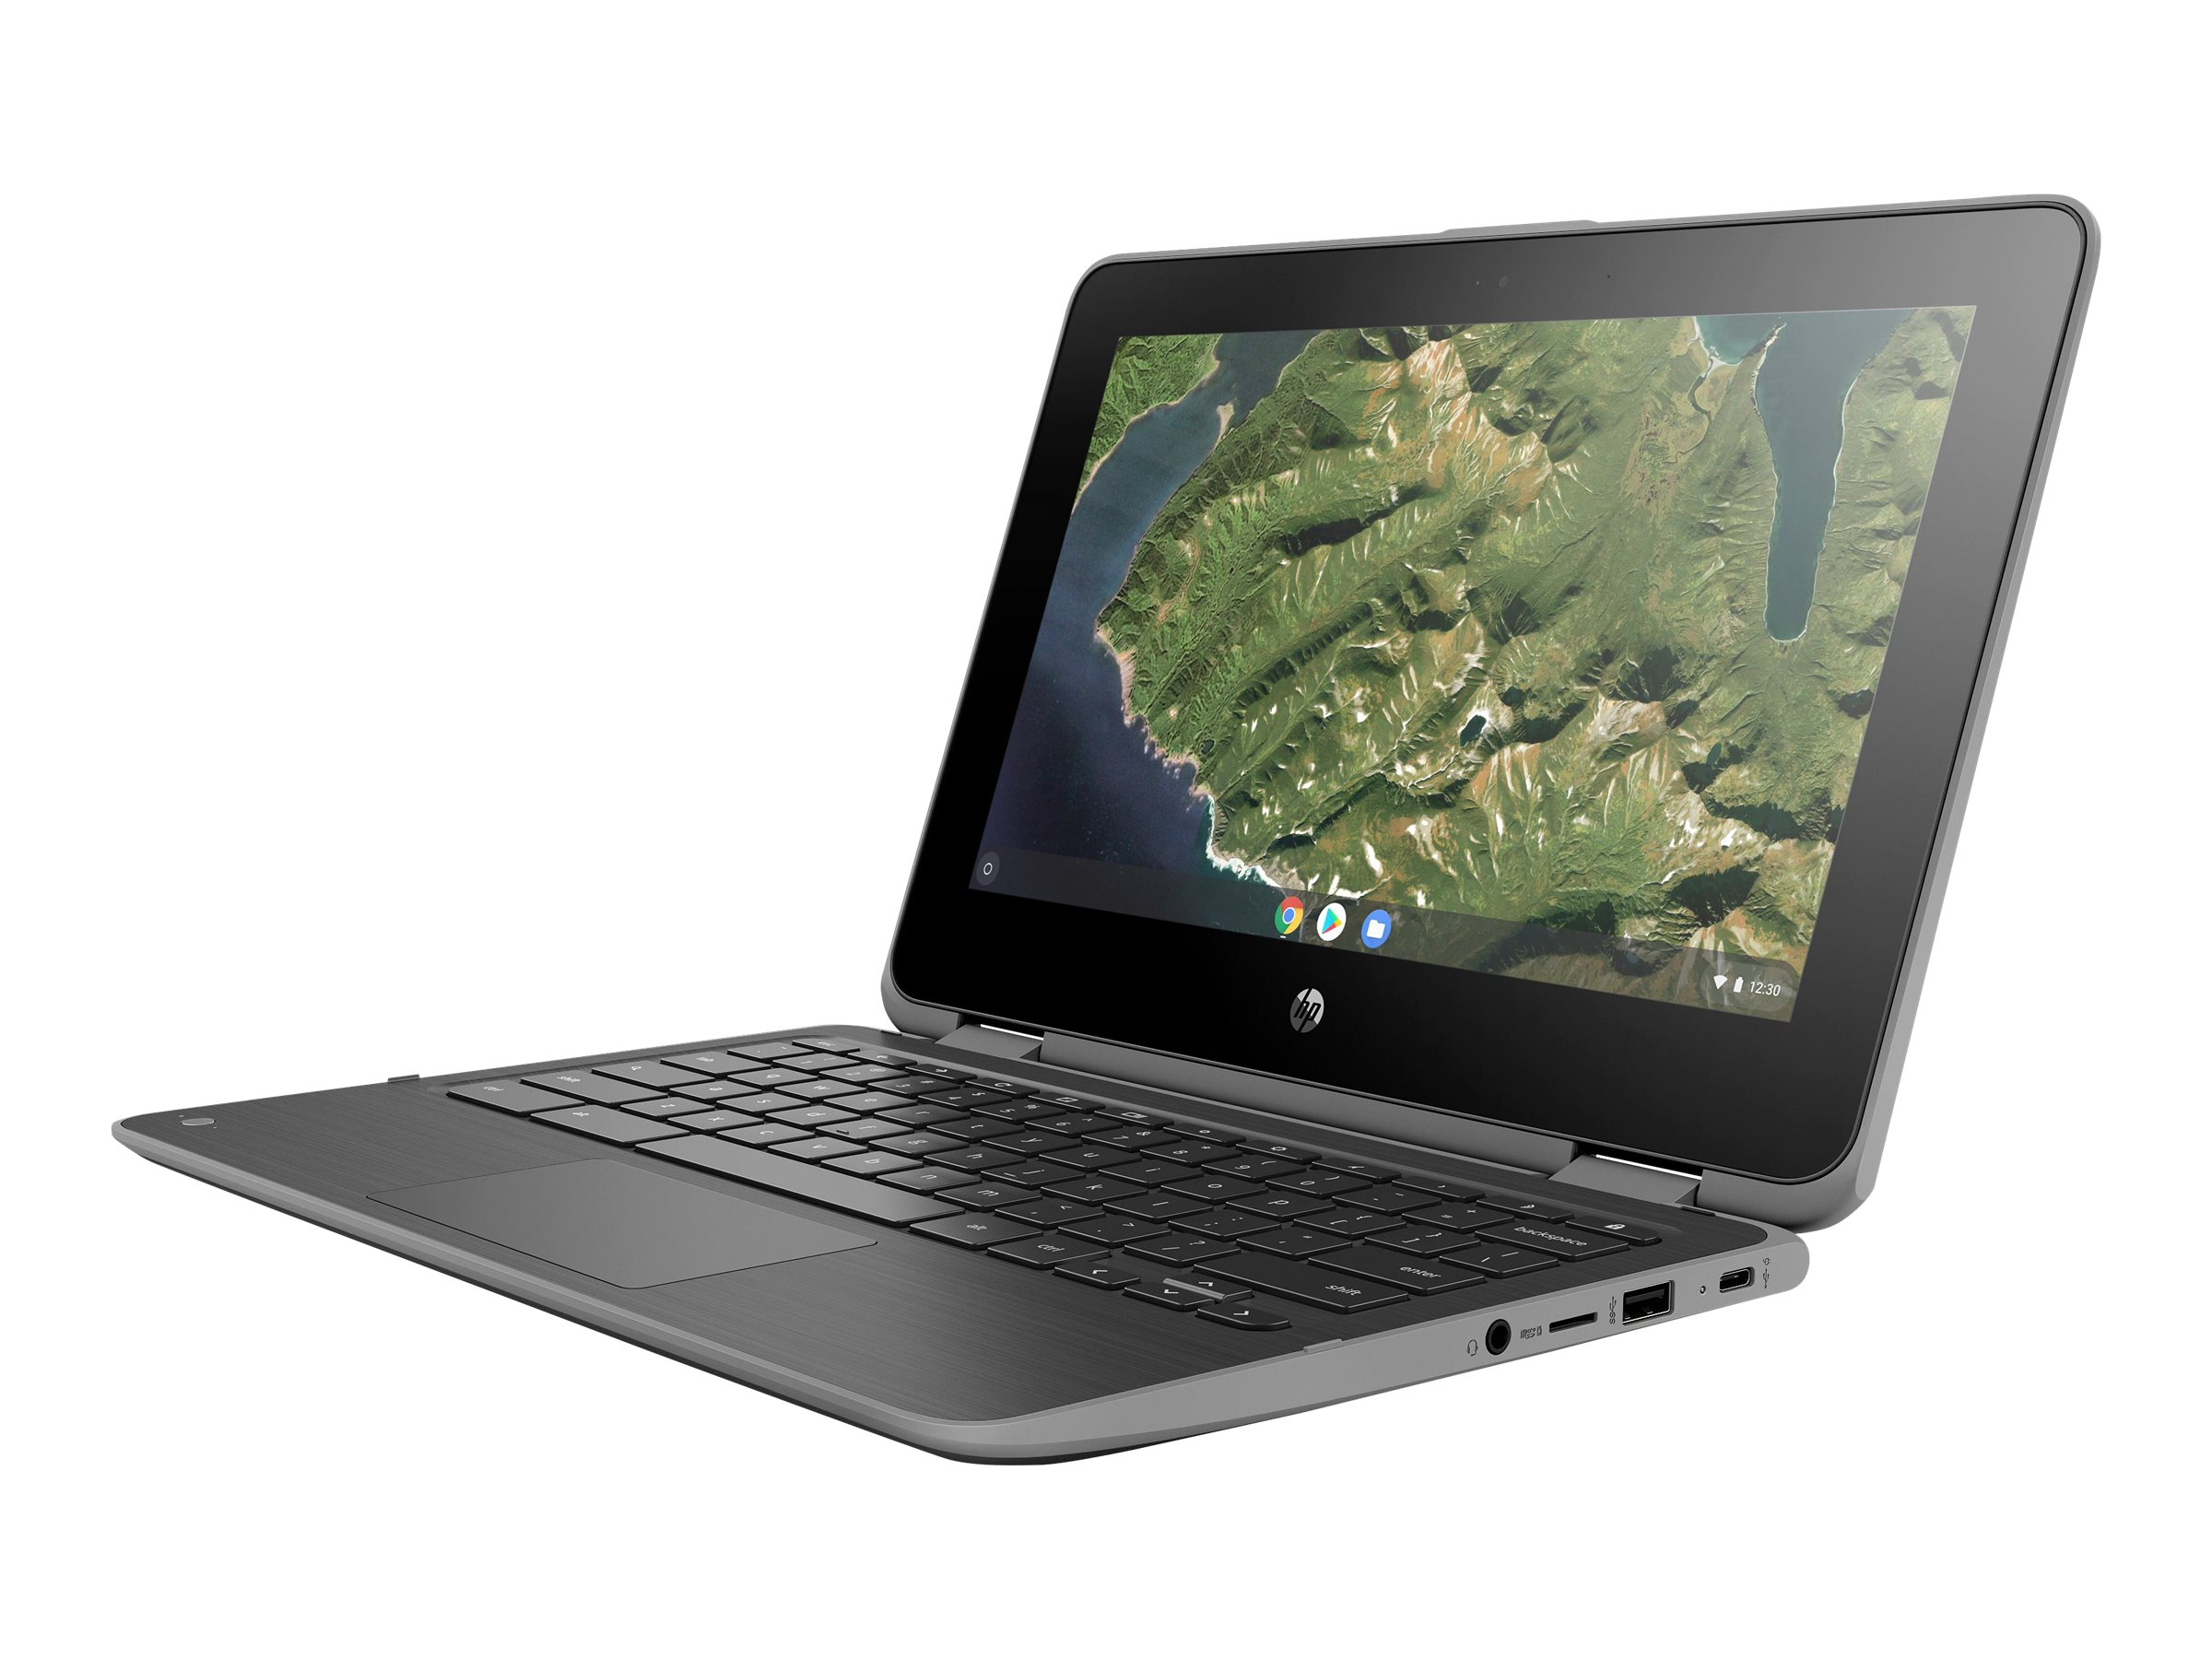 "HP Chromebook x360 11 G2 - Education Edition - 11.6"" - Celeron N4000 - 8 GB RAM - 64 GB eMMC - US"